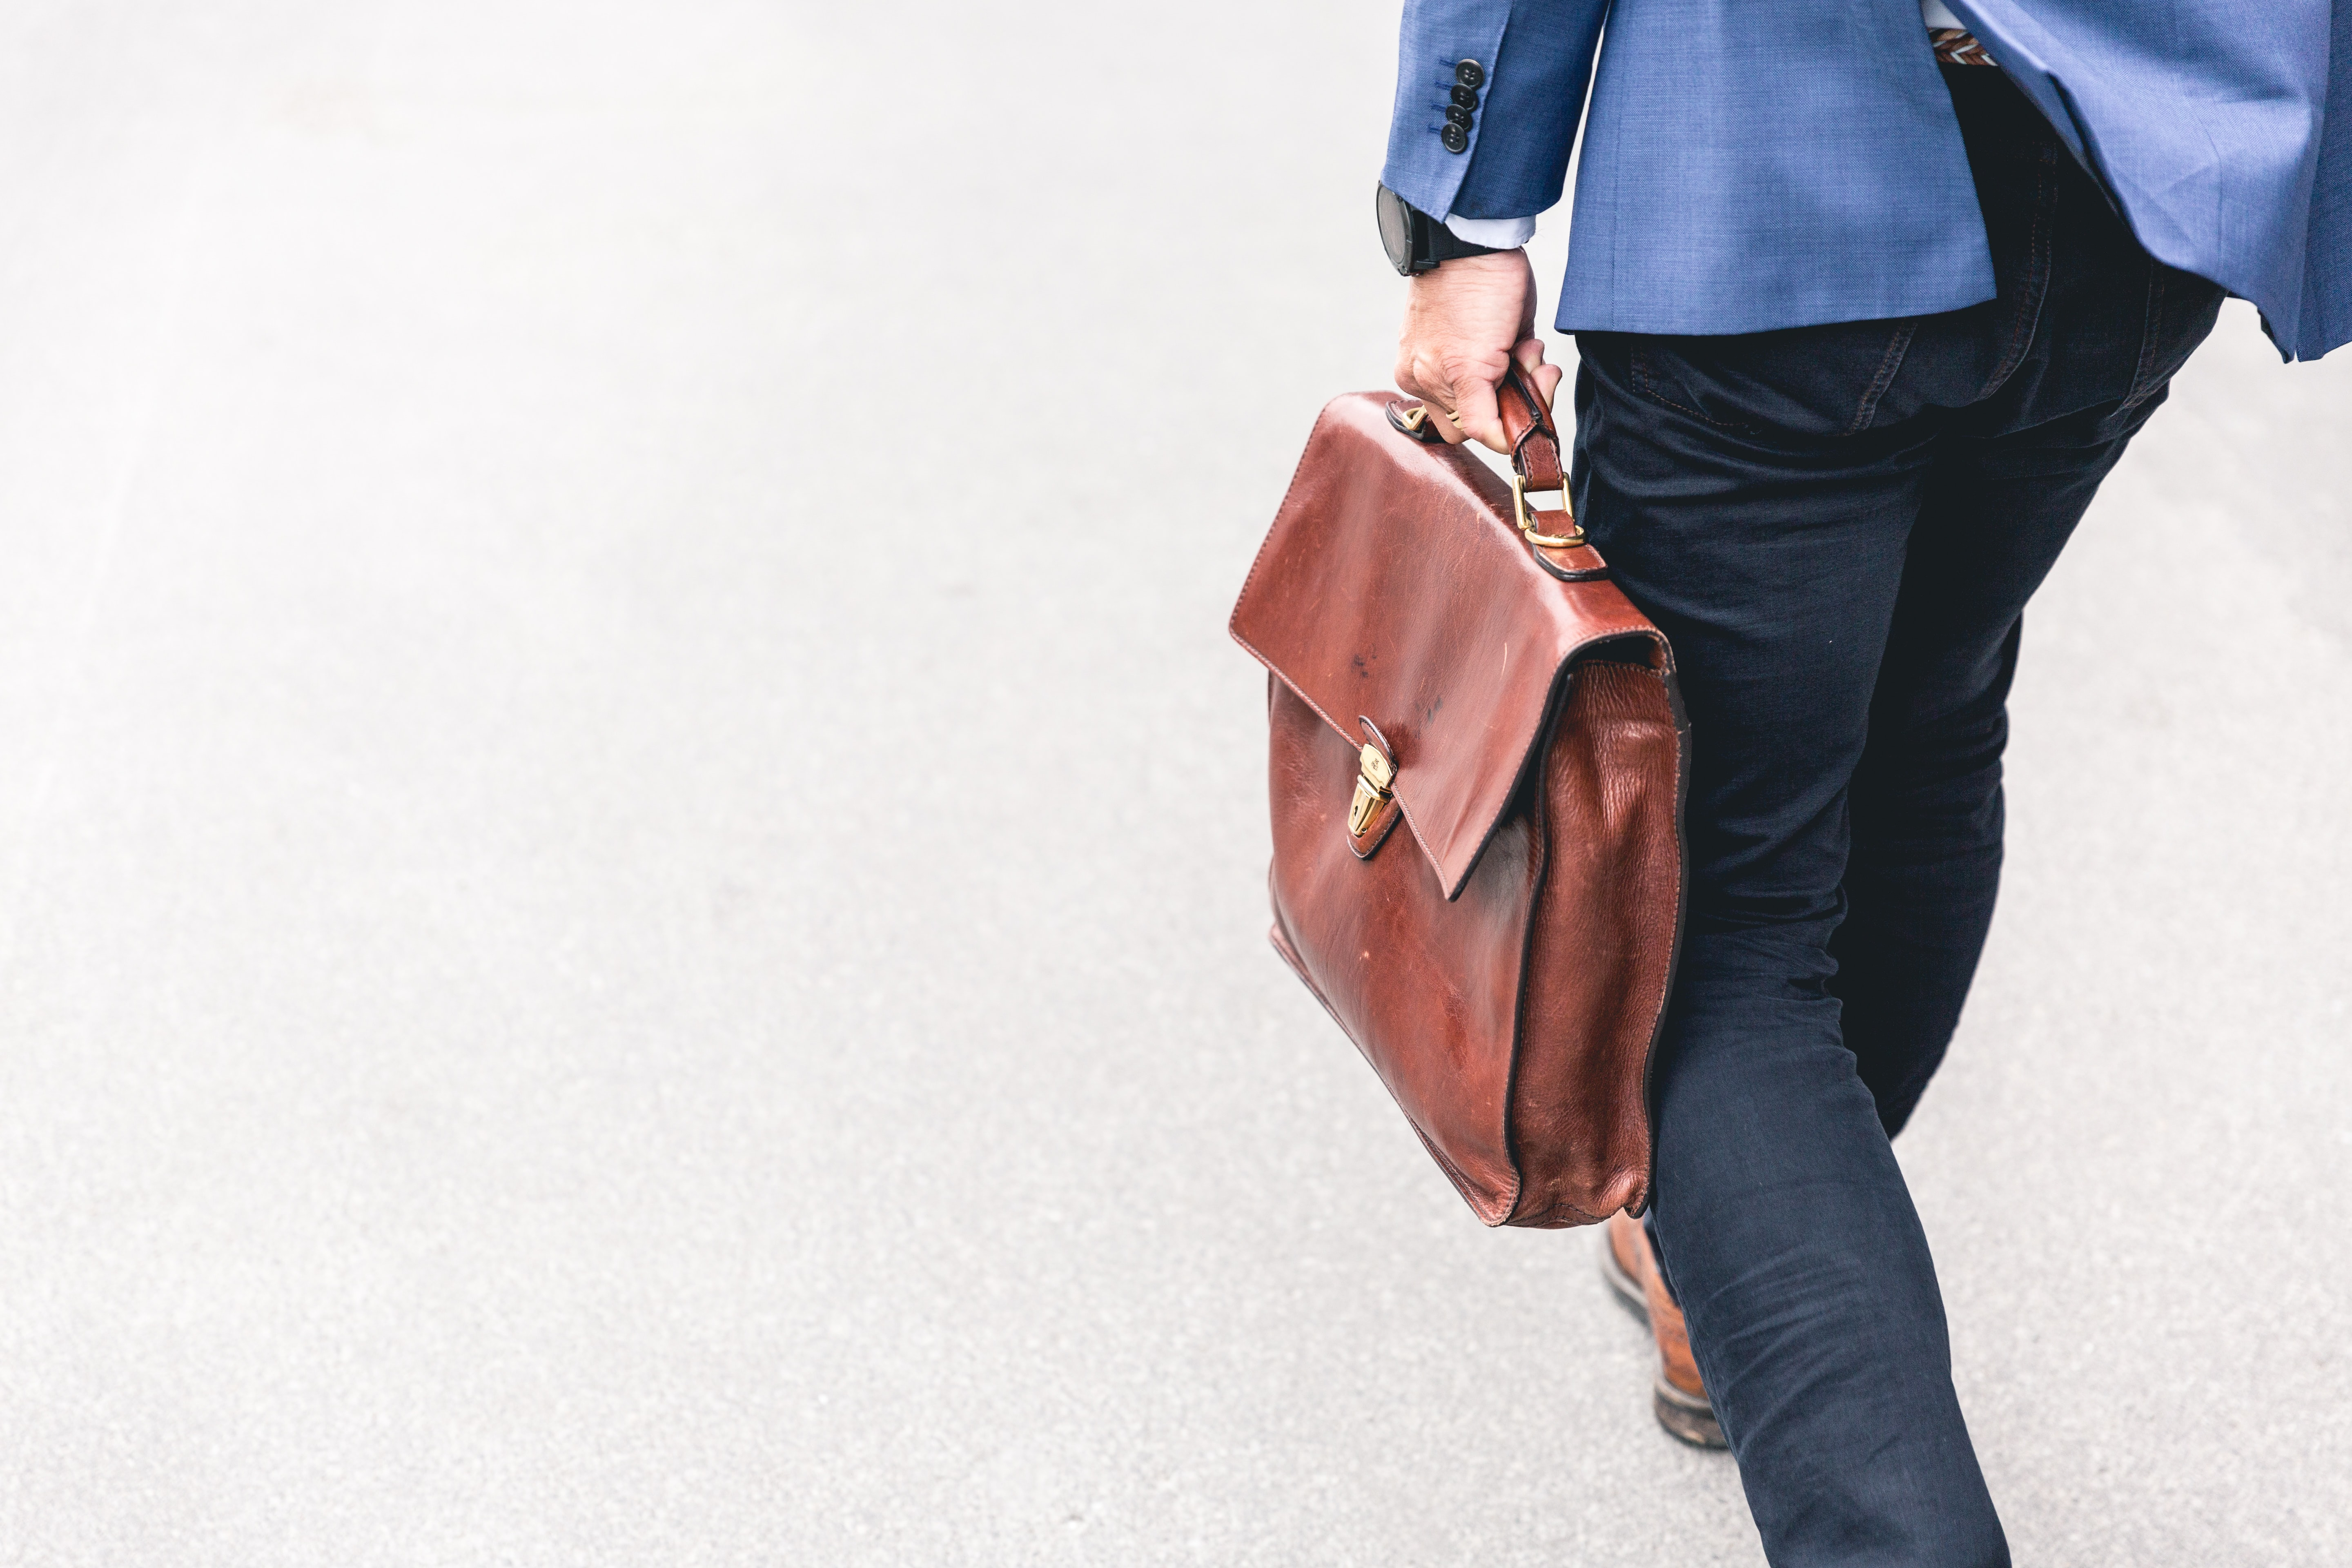 Man walking with brown leather briefcase; image by Marten Bjork, via Unsplash.com.